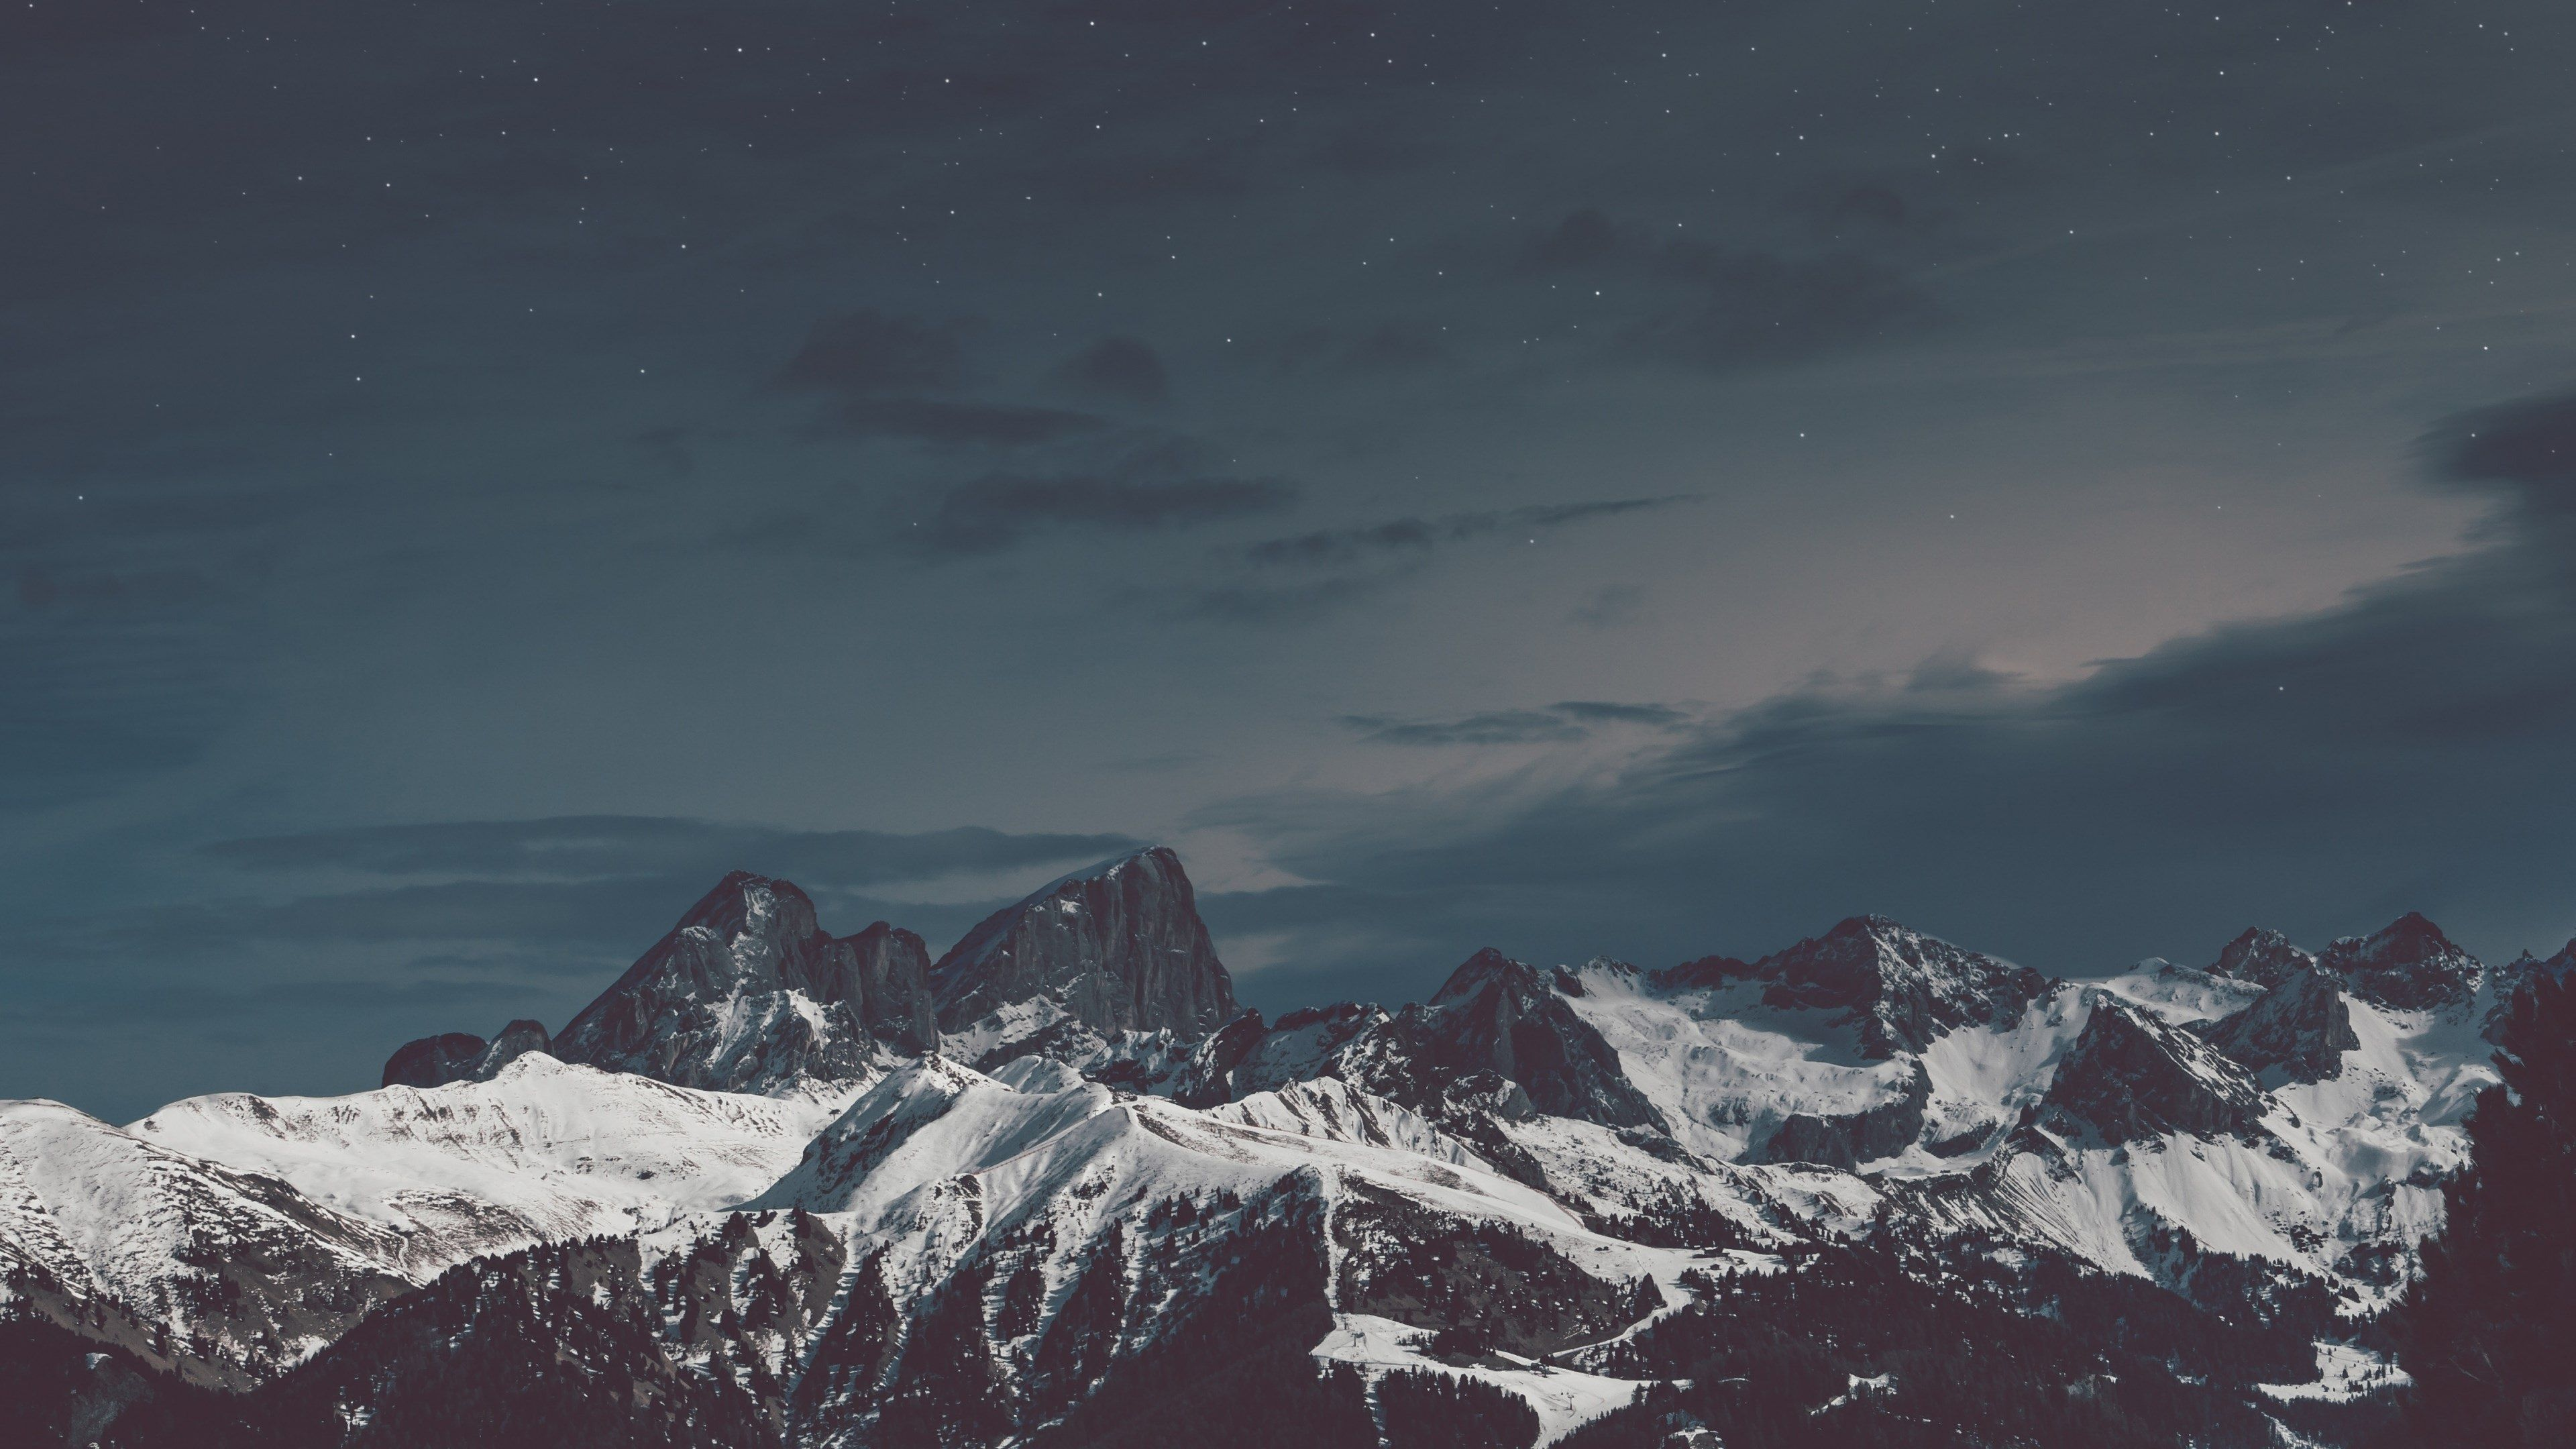 3840x2160 Mountains 4k Wallpaper Pc Background Planos De Fundo Papeis De Parede Fofos Para Celular Papel De Parede Do Notebook